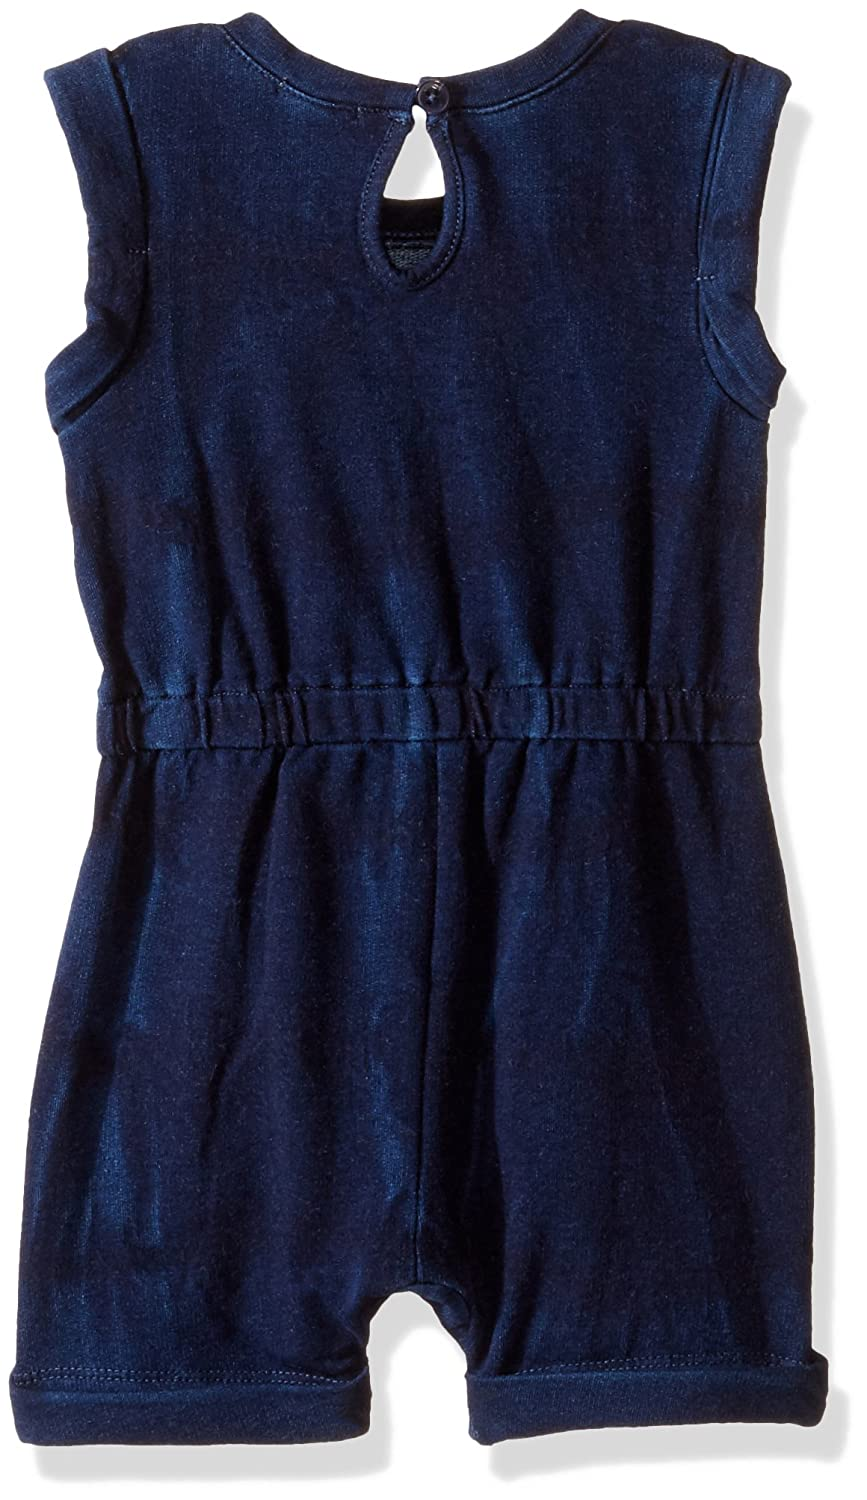 a6611a15f769 Amazon.com  Splendid Girls  Indigo Baby French Terry Romper with Lace